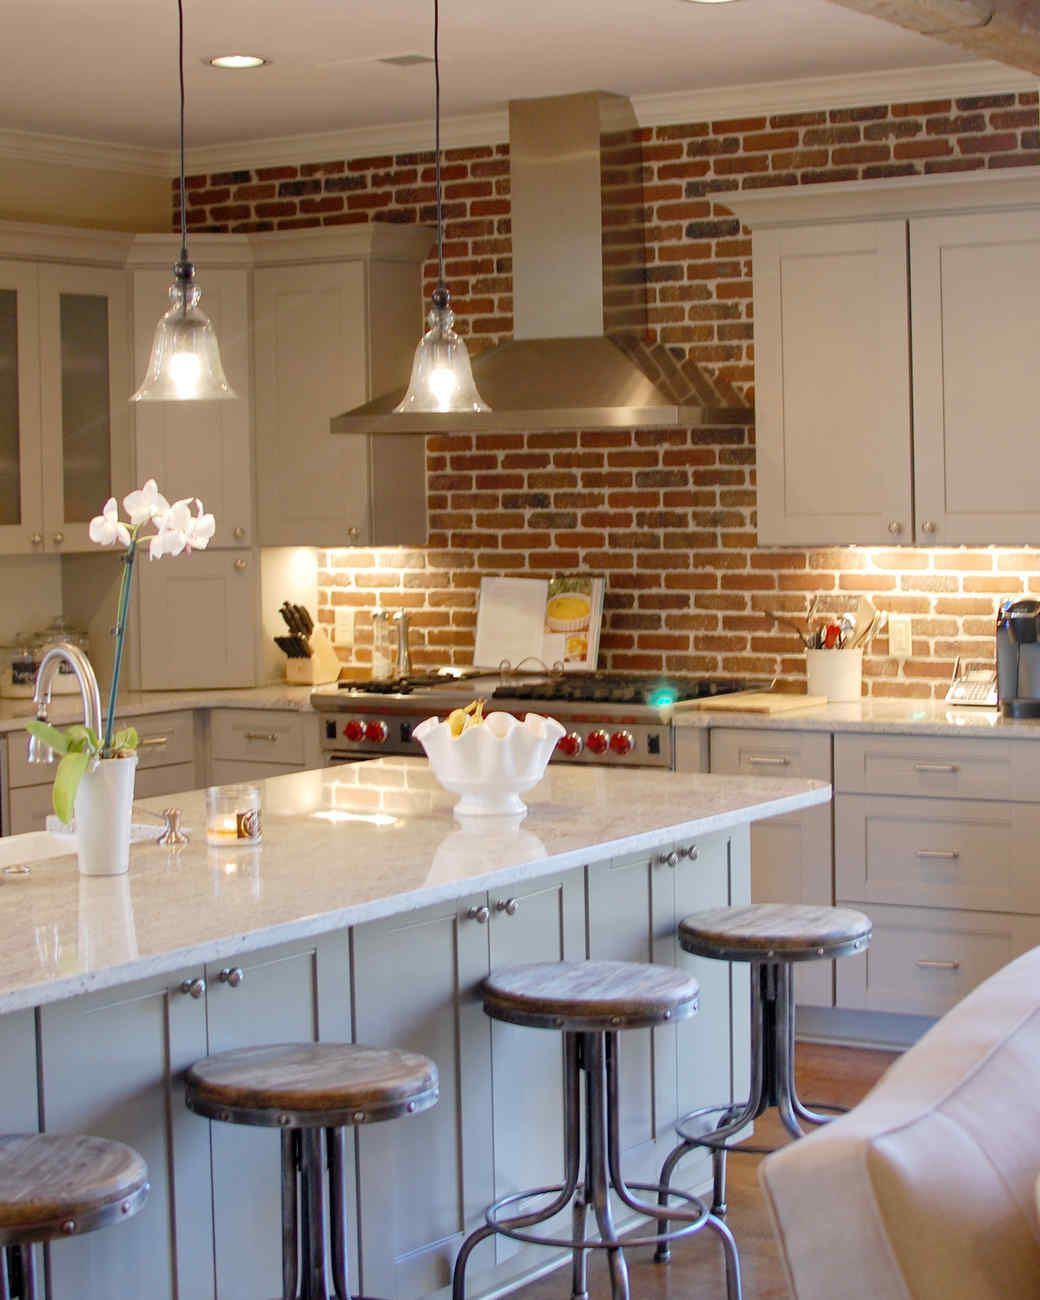 20 Beautiful Functional Kitchens To Inspire Your Own Maison Et Salon